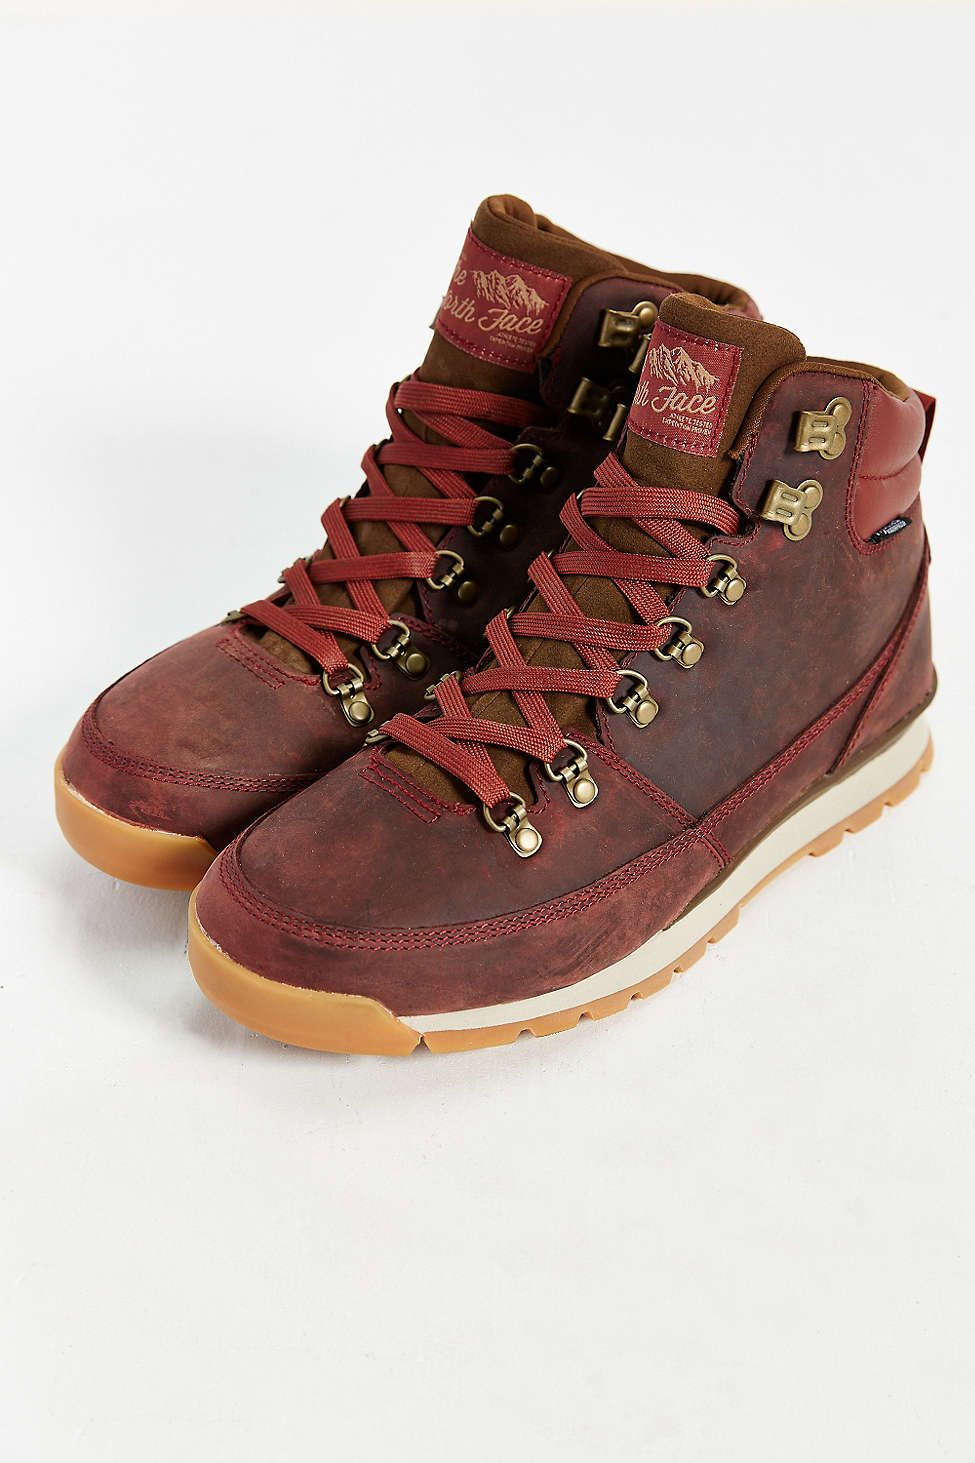 75020e7e12 The North Face Back To Berkeley Hiking Boot - Urban Outfitters ...